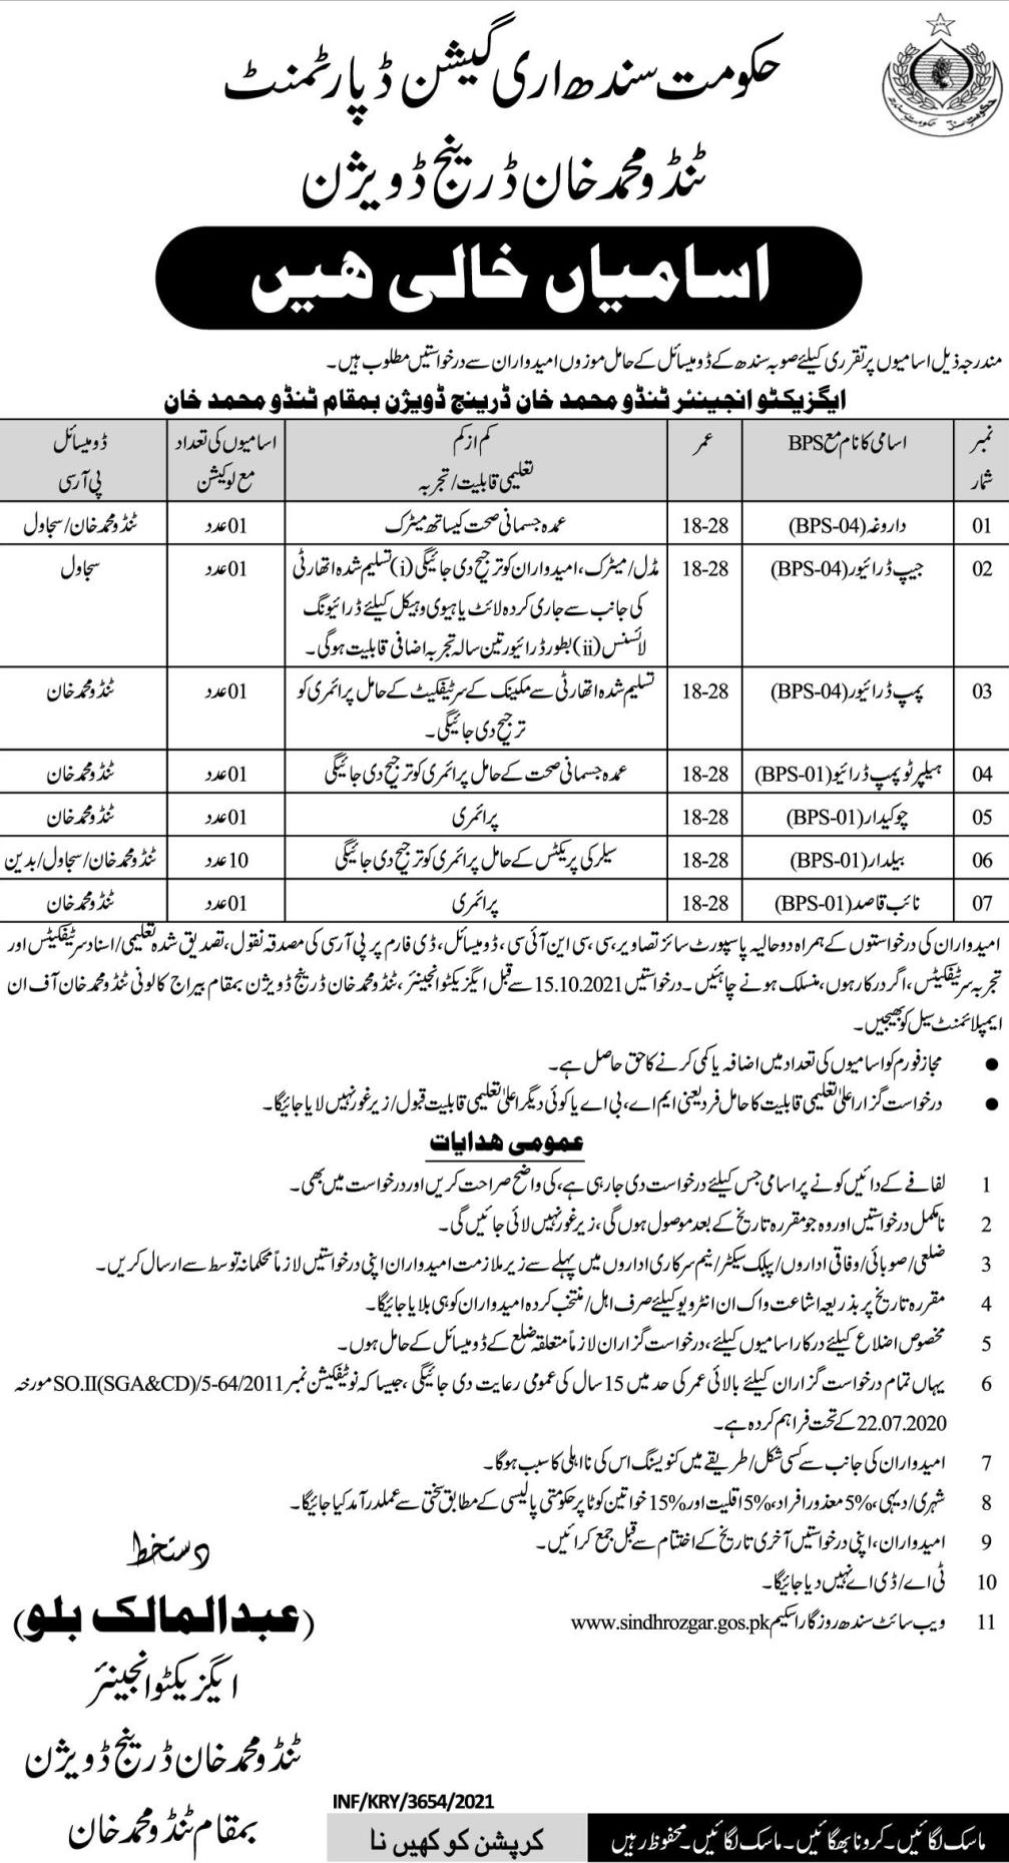 Government of Sindh Irrigation Department Vacancies 2021 – Latest Jobs 3